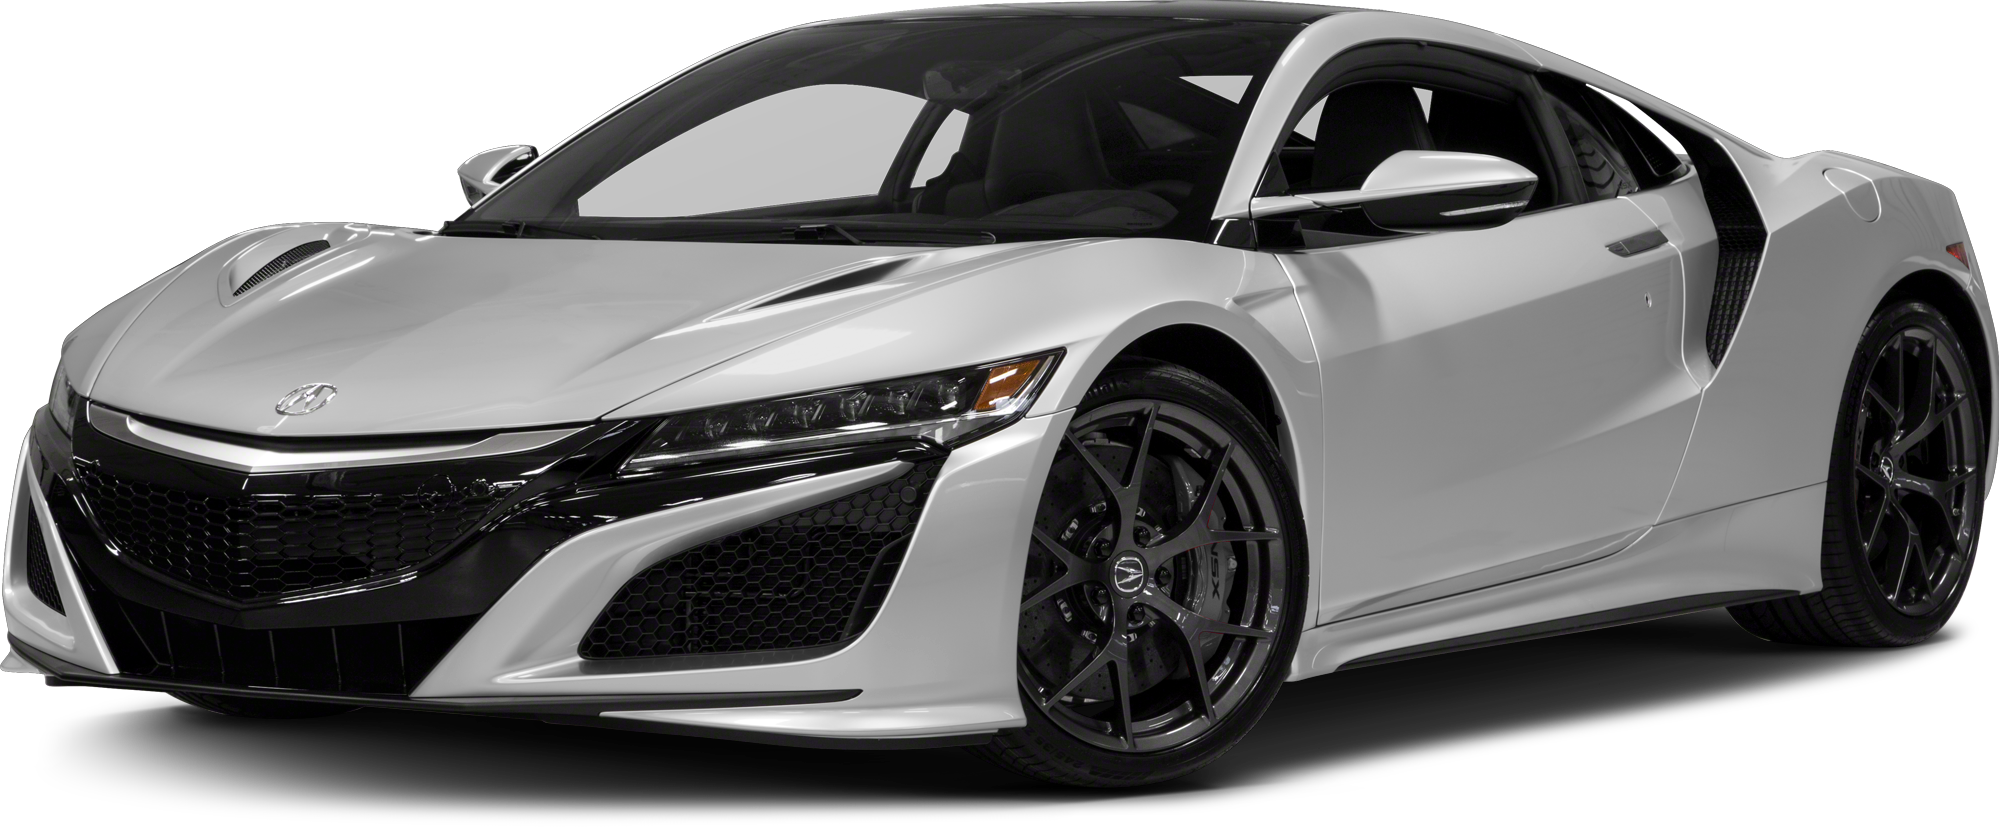 http://images.dealer.com/ddc/vehicles/2019/Acura/NSX/Coupe/trim_Base_323e38/perspective/front-left/2019_36.png